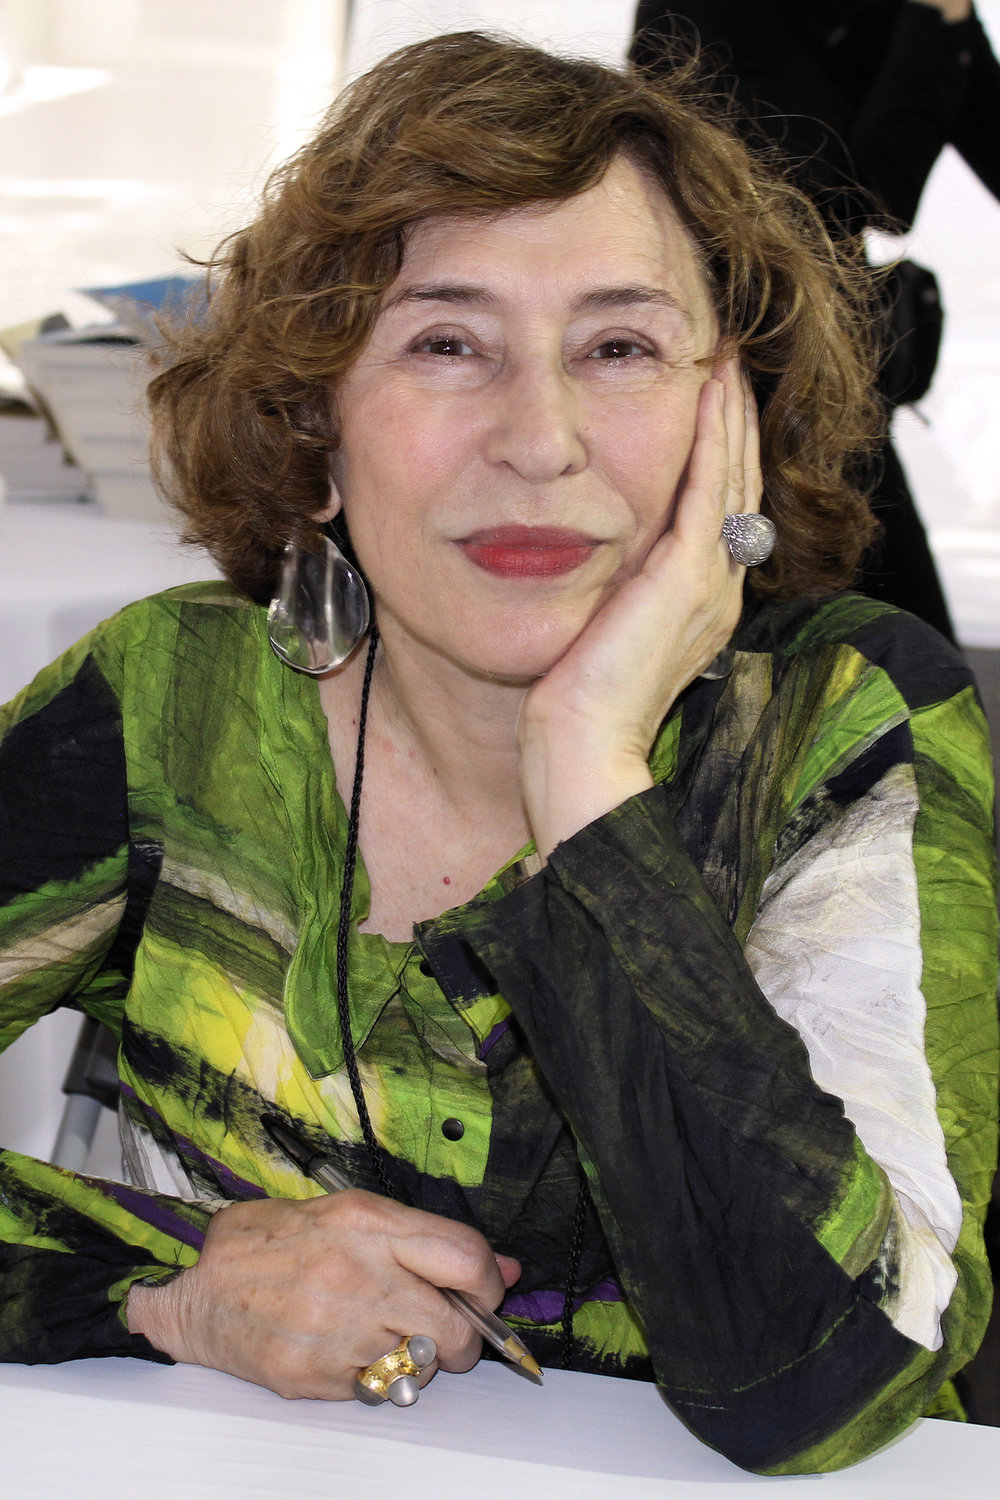 azar nafisi The latest tweets from azar nafisi (@azarnafisi) author of the national bestseller reading lolita in tehran and the republic of imagination: america in three books join the campaign using #bookssave dc/republic of imagination.